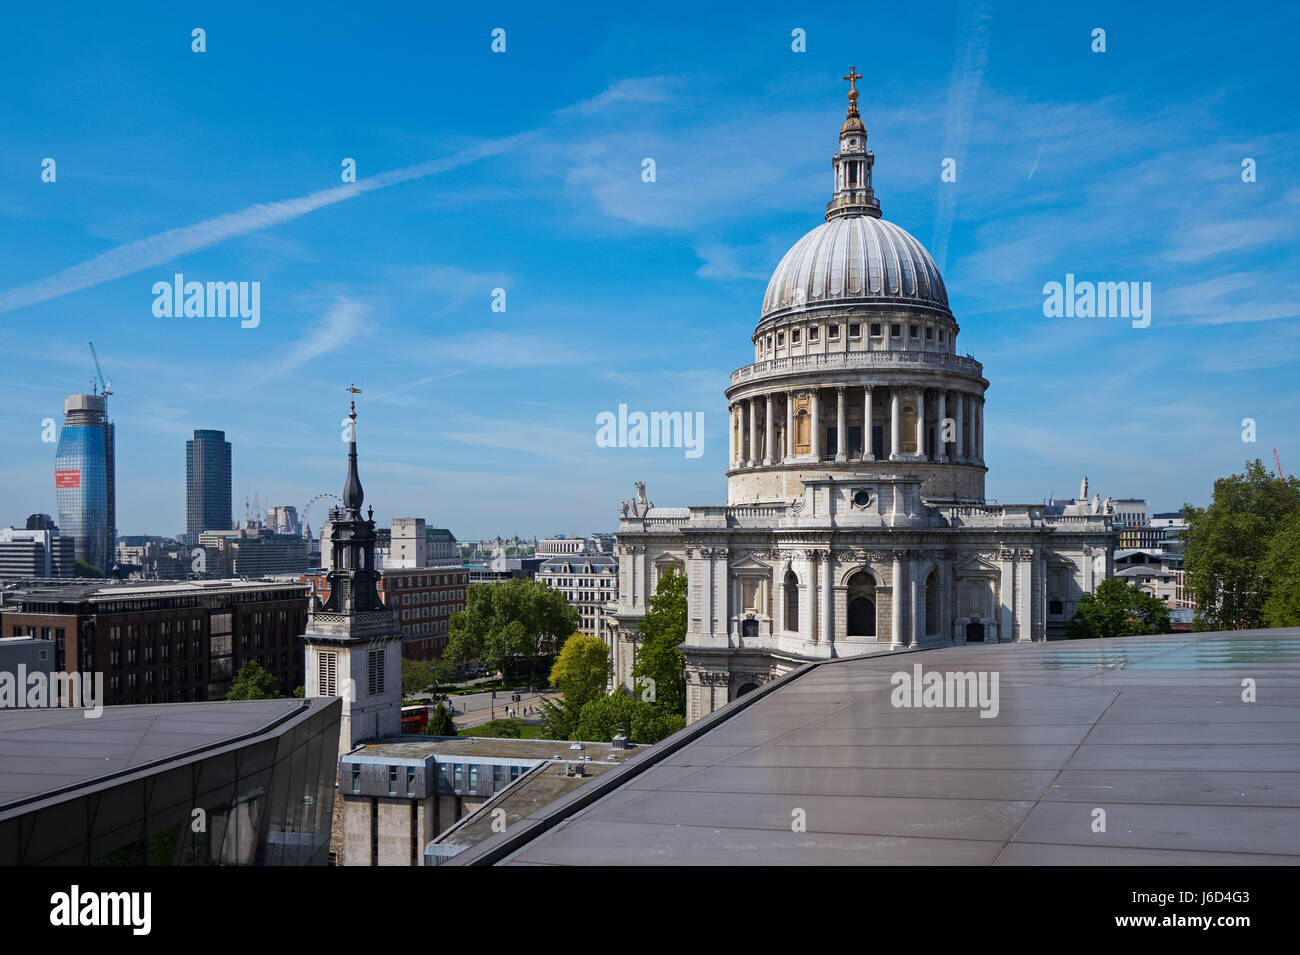 St. Paul's Cathedral seen from One New Change in London England United Kingdom UK - Stock Image